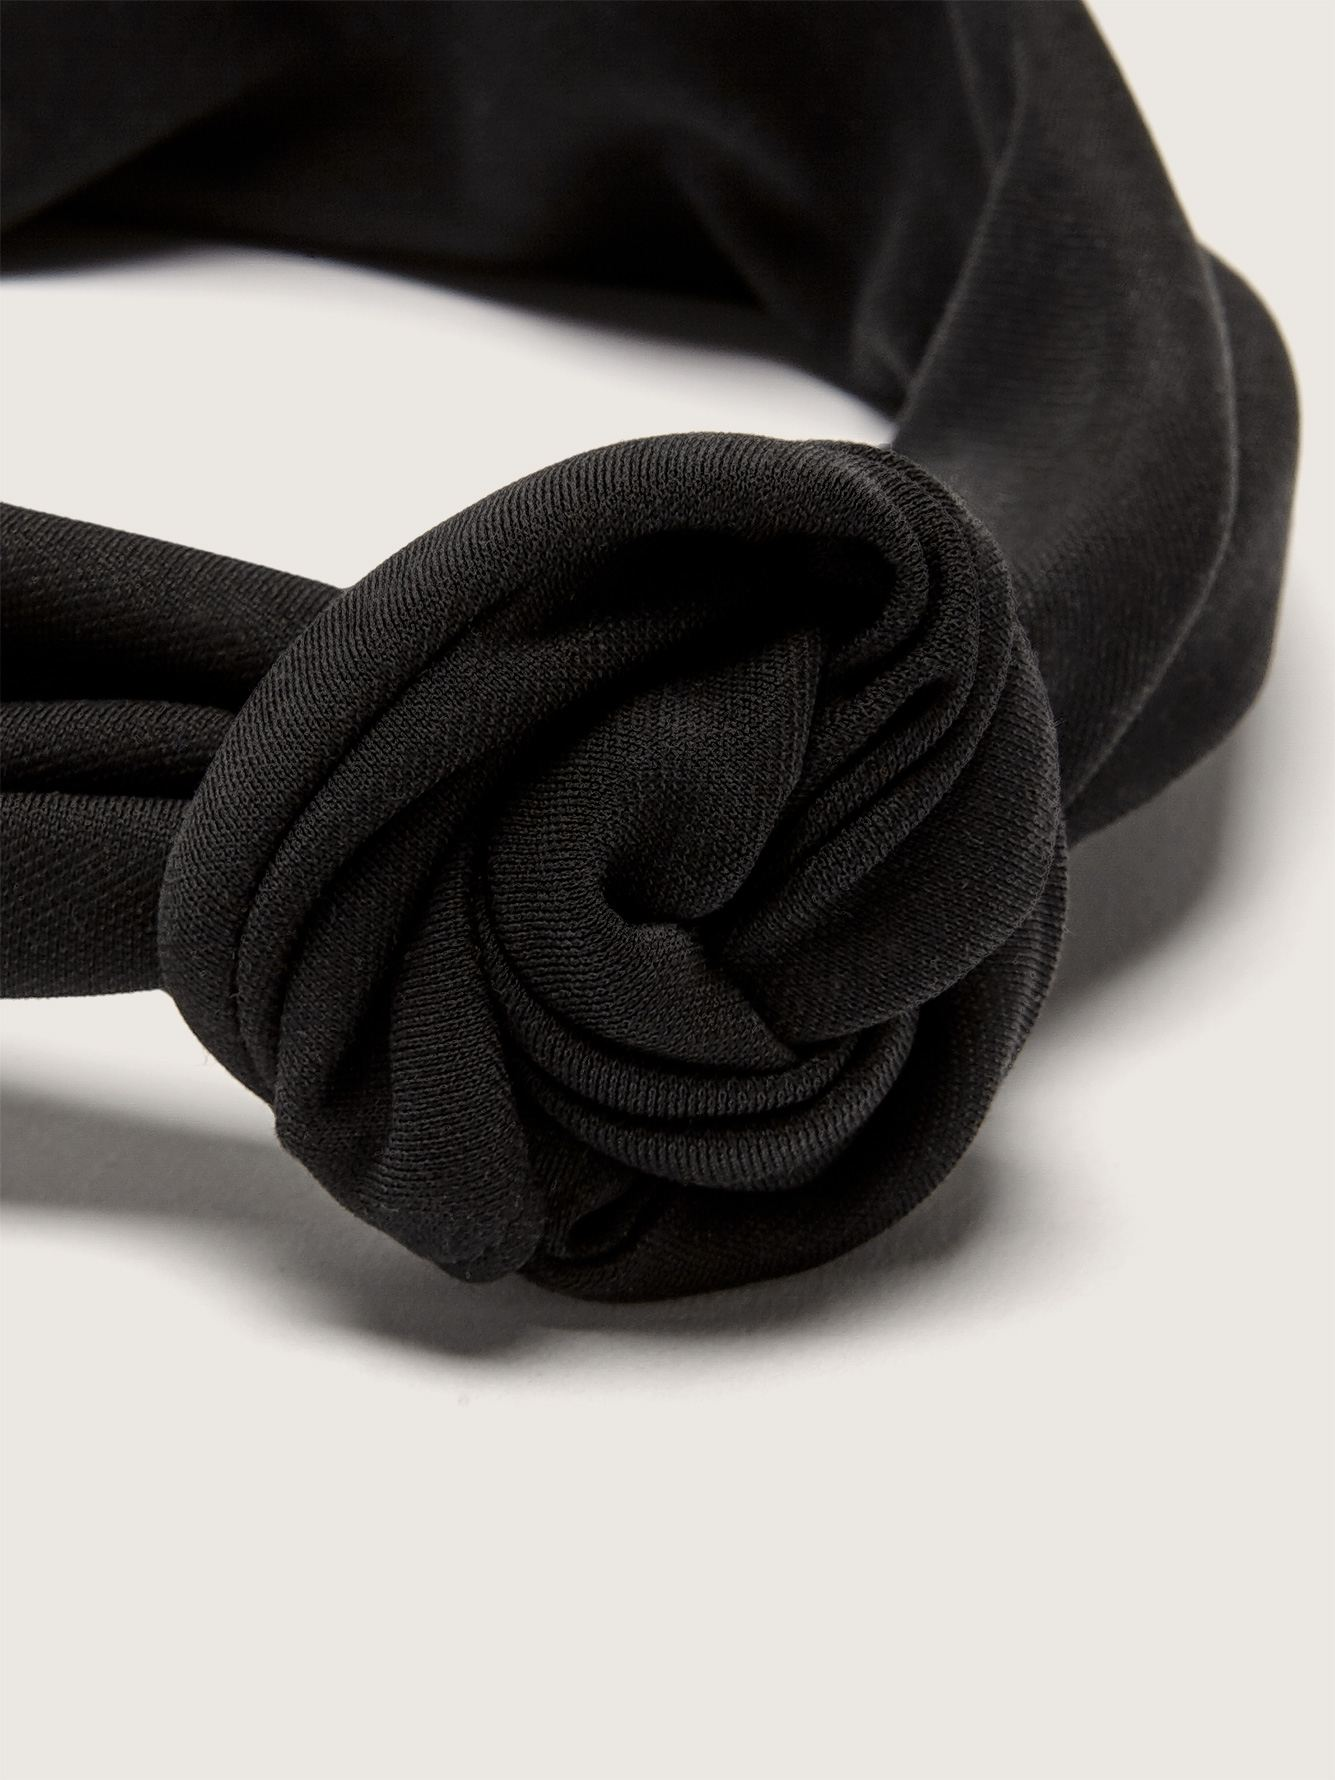 Twisted Headband with Integrated Metal Rod - Gibou